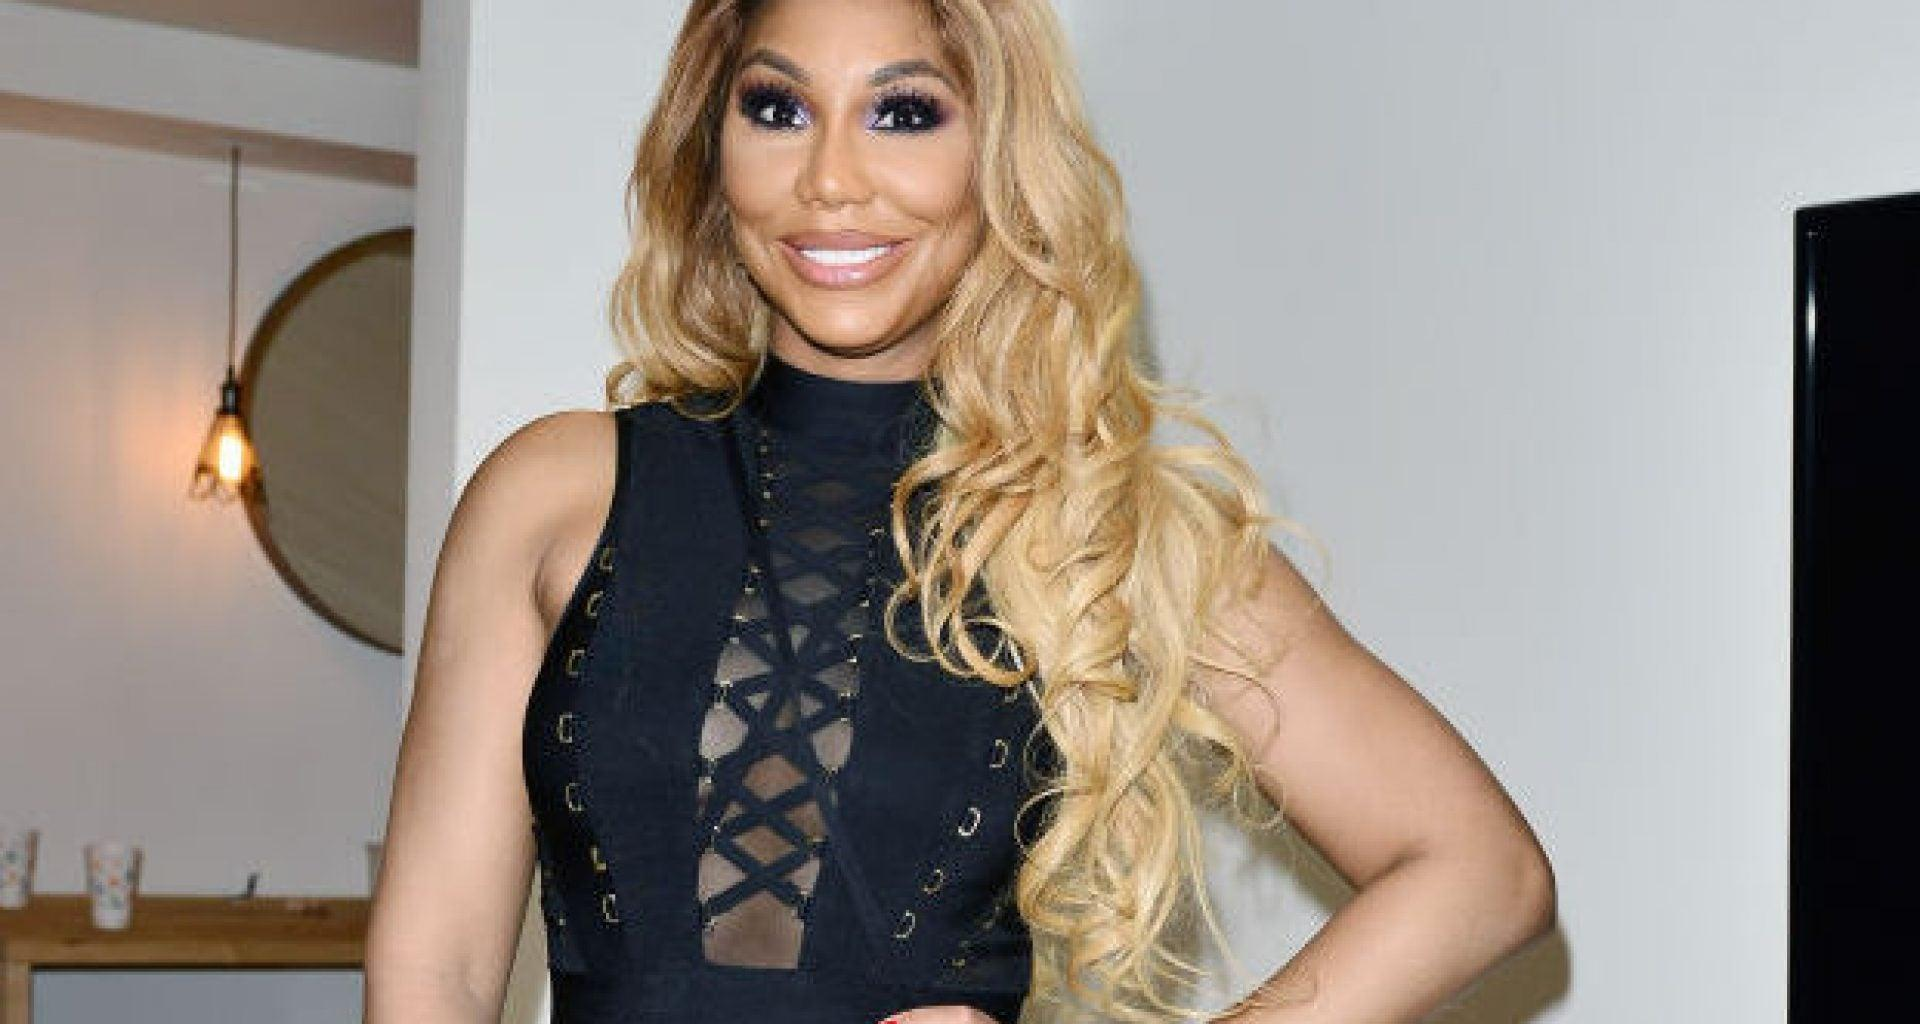 Tamar Braxton Has A Special Gift For The World - Check Out Her Amazing Surprise